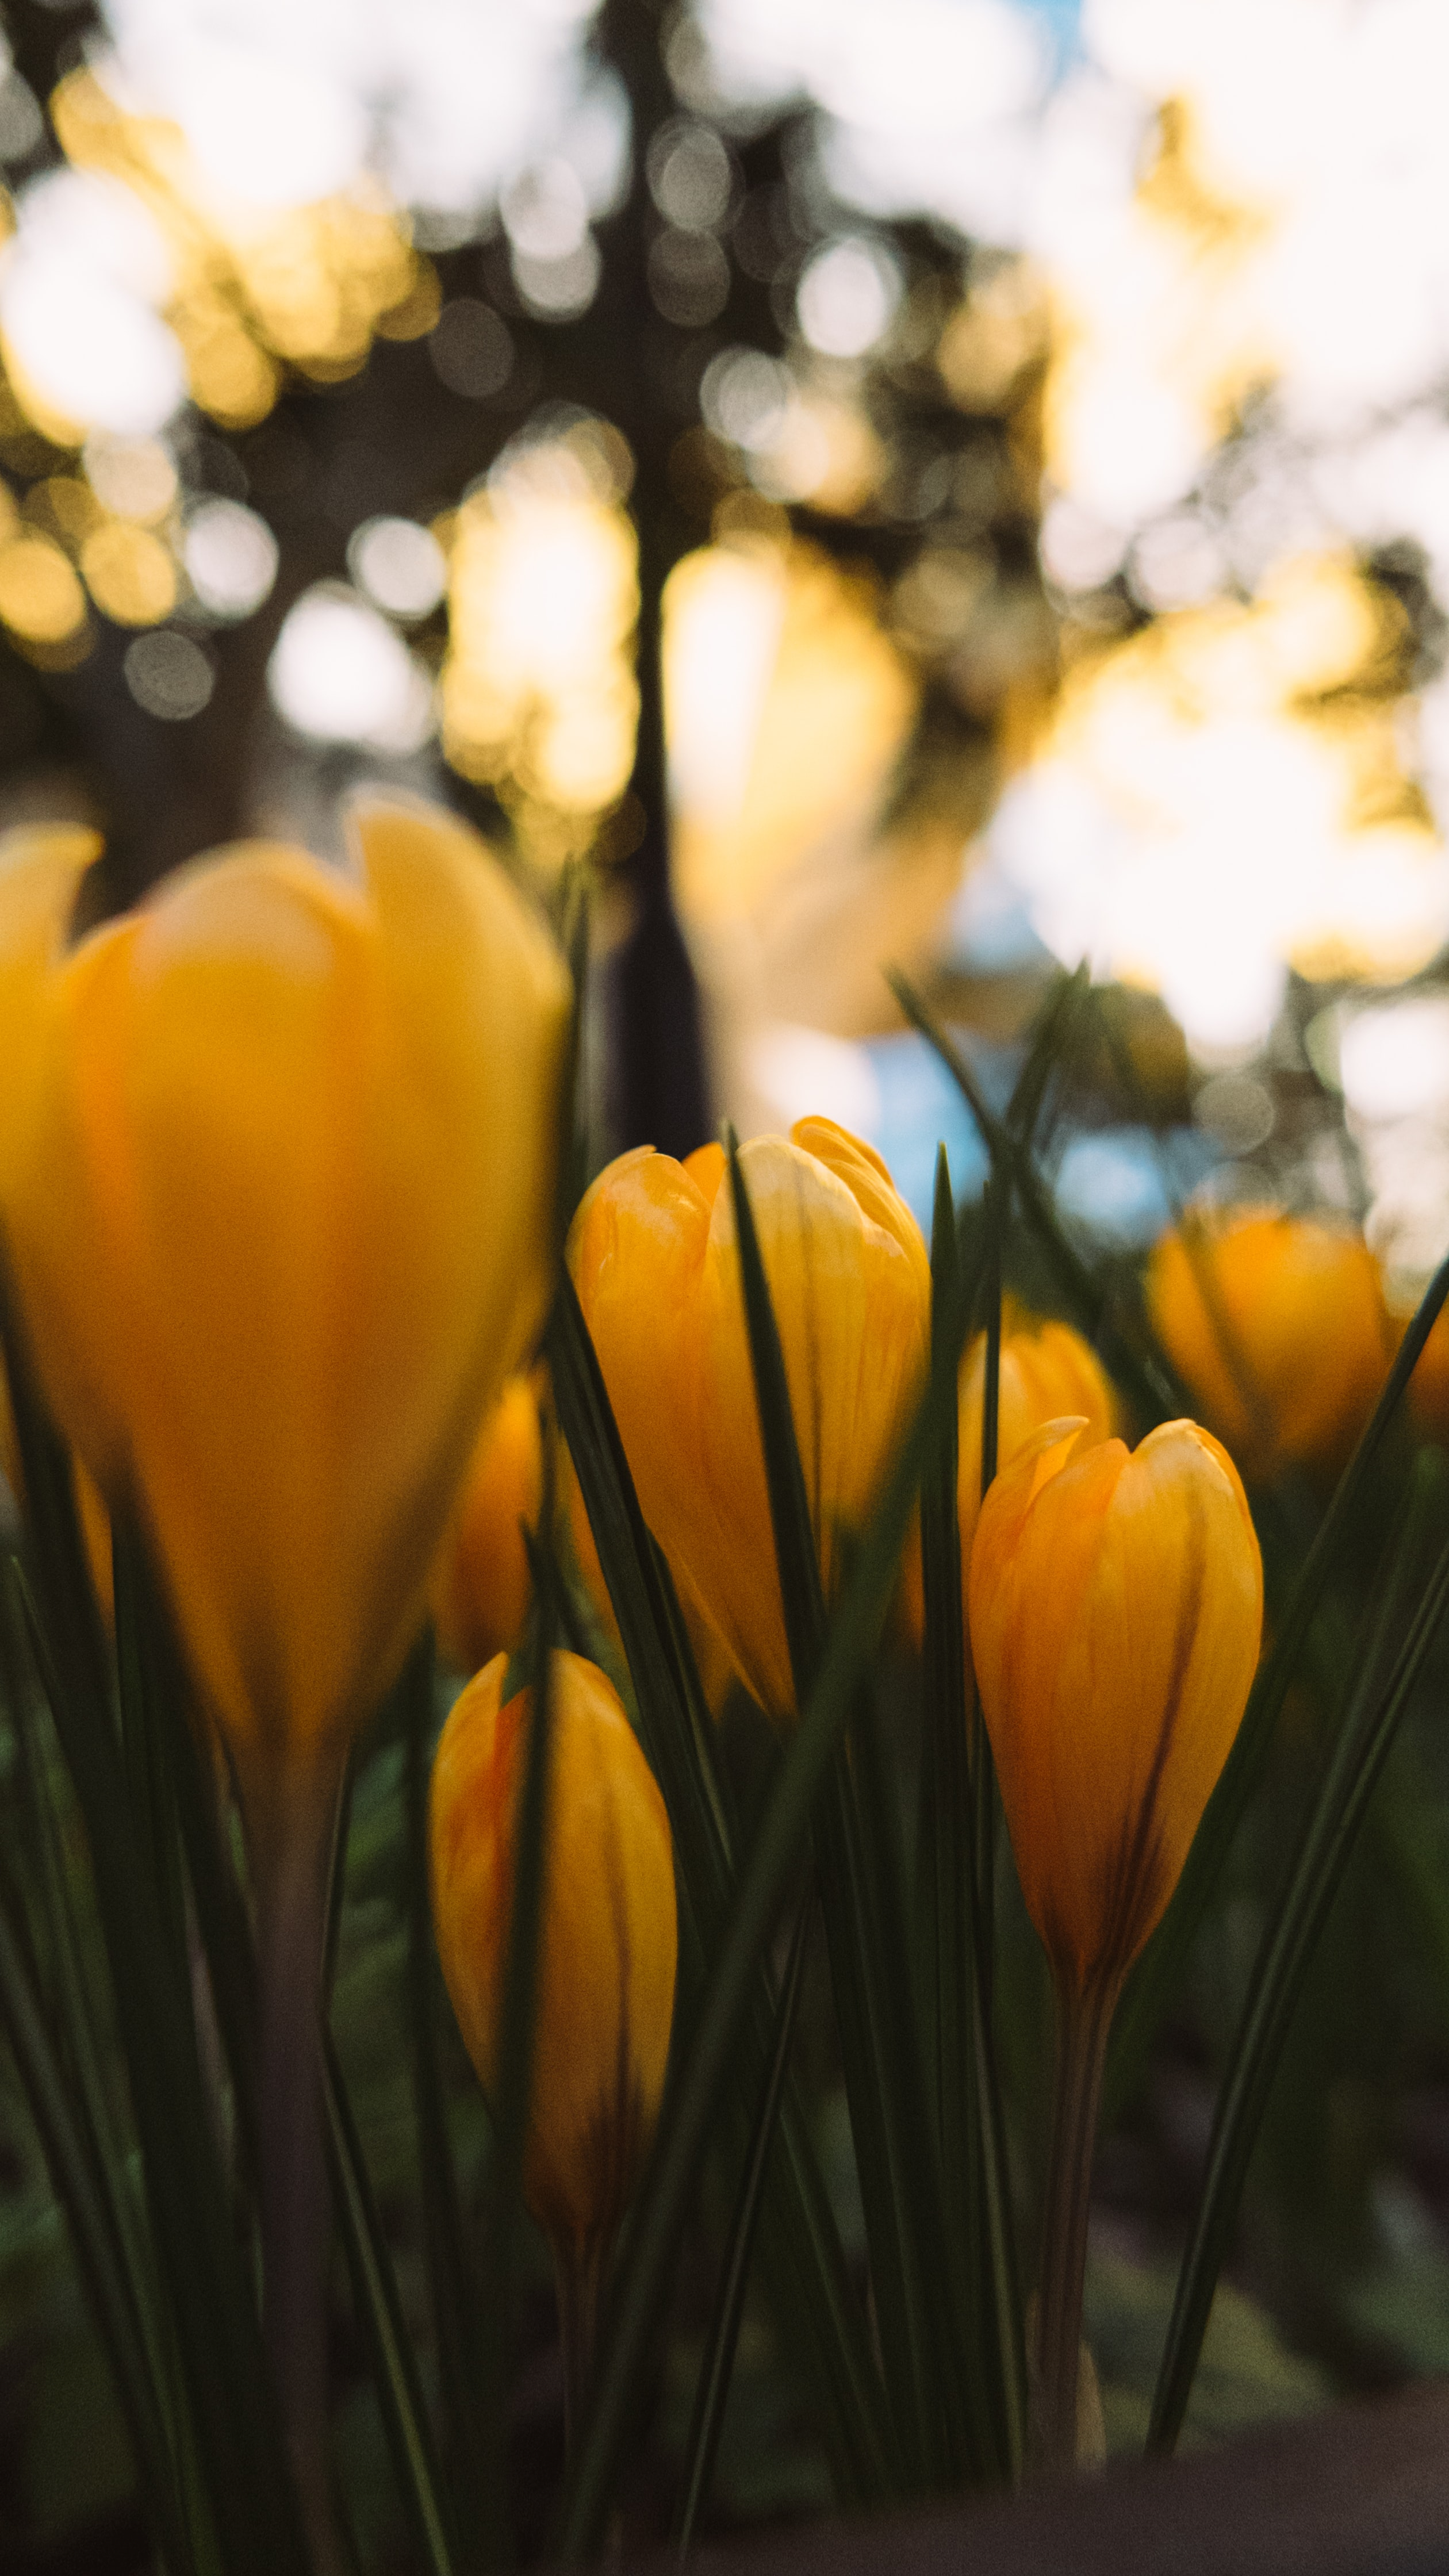 yellow tulip flowers in close-up photography